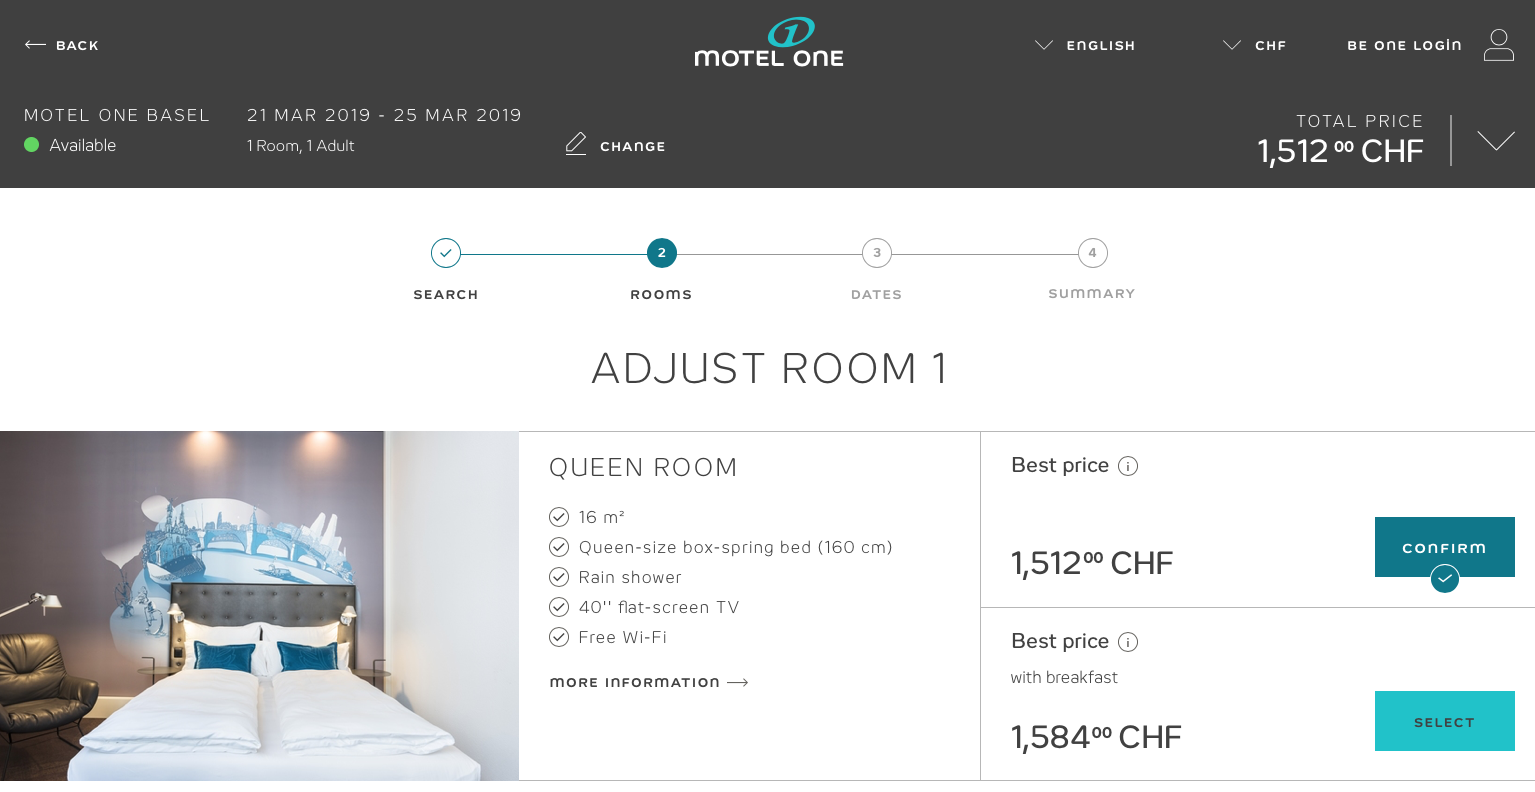 Motel One Baselworld 2019 cost